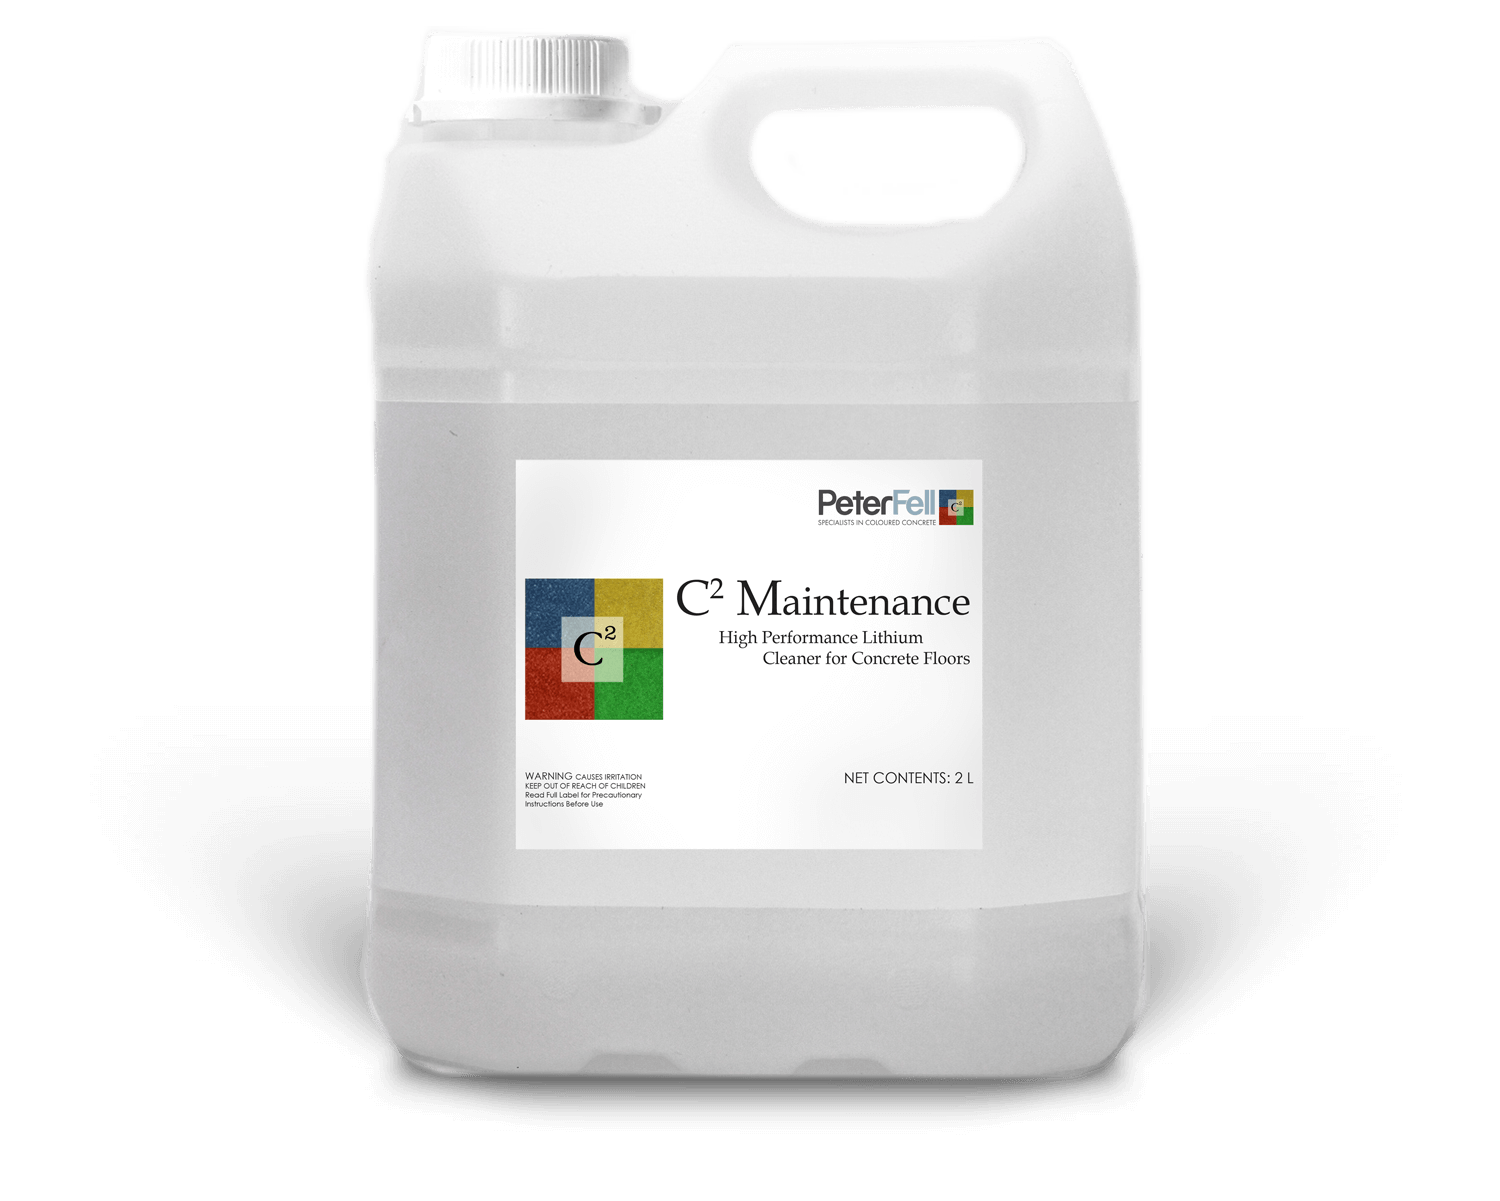 C2 Maintenance Lithium cleaner for concrete floors